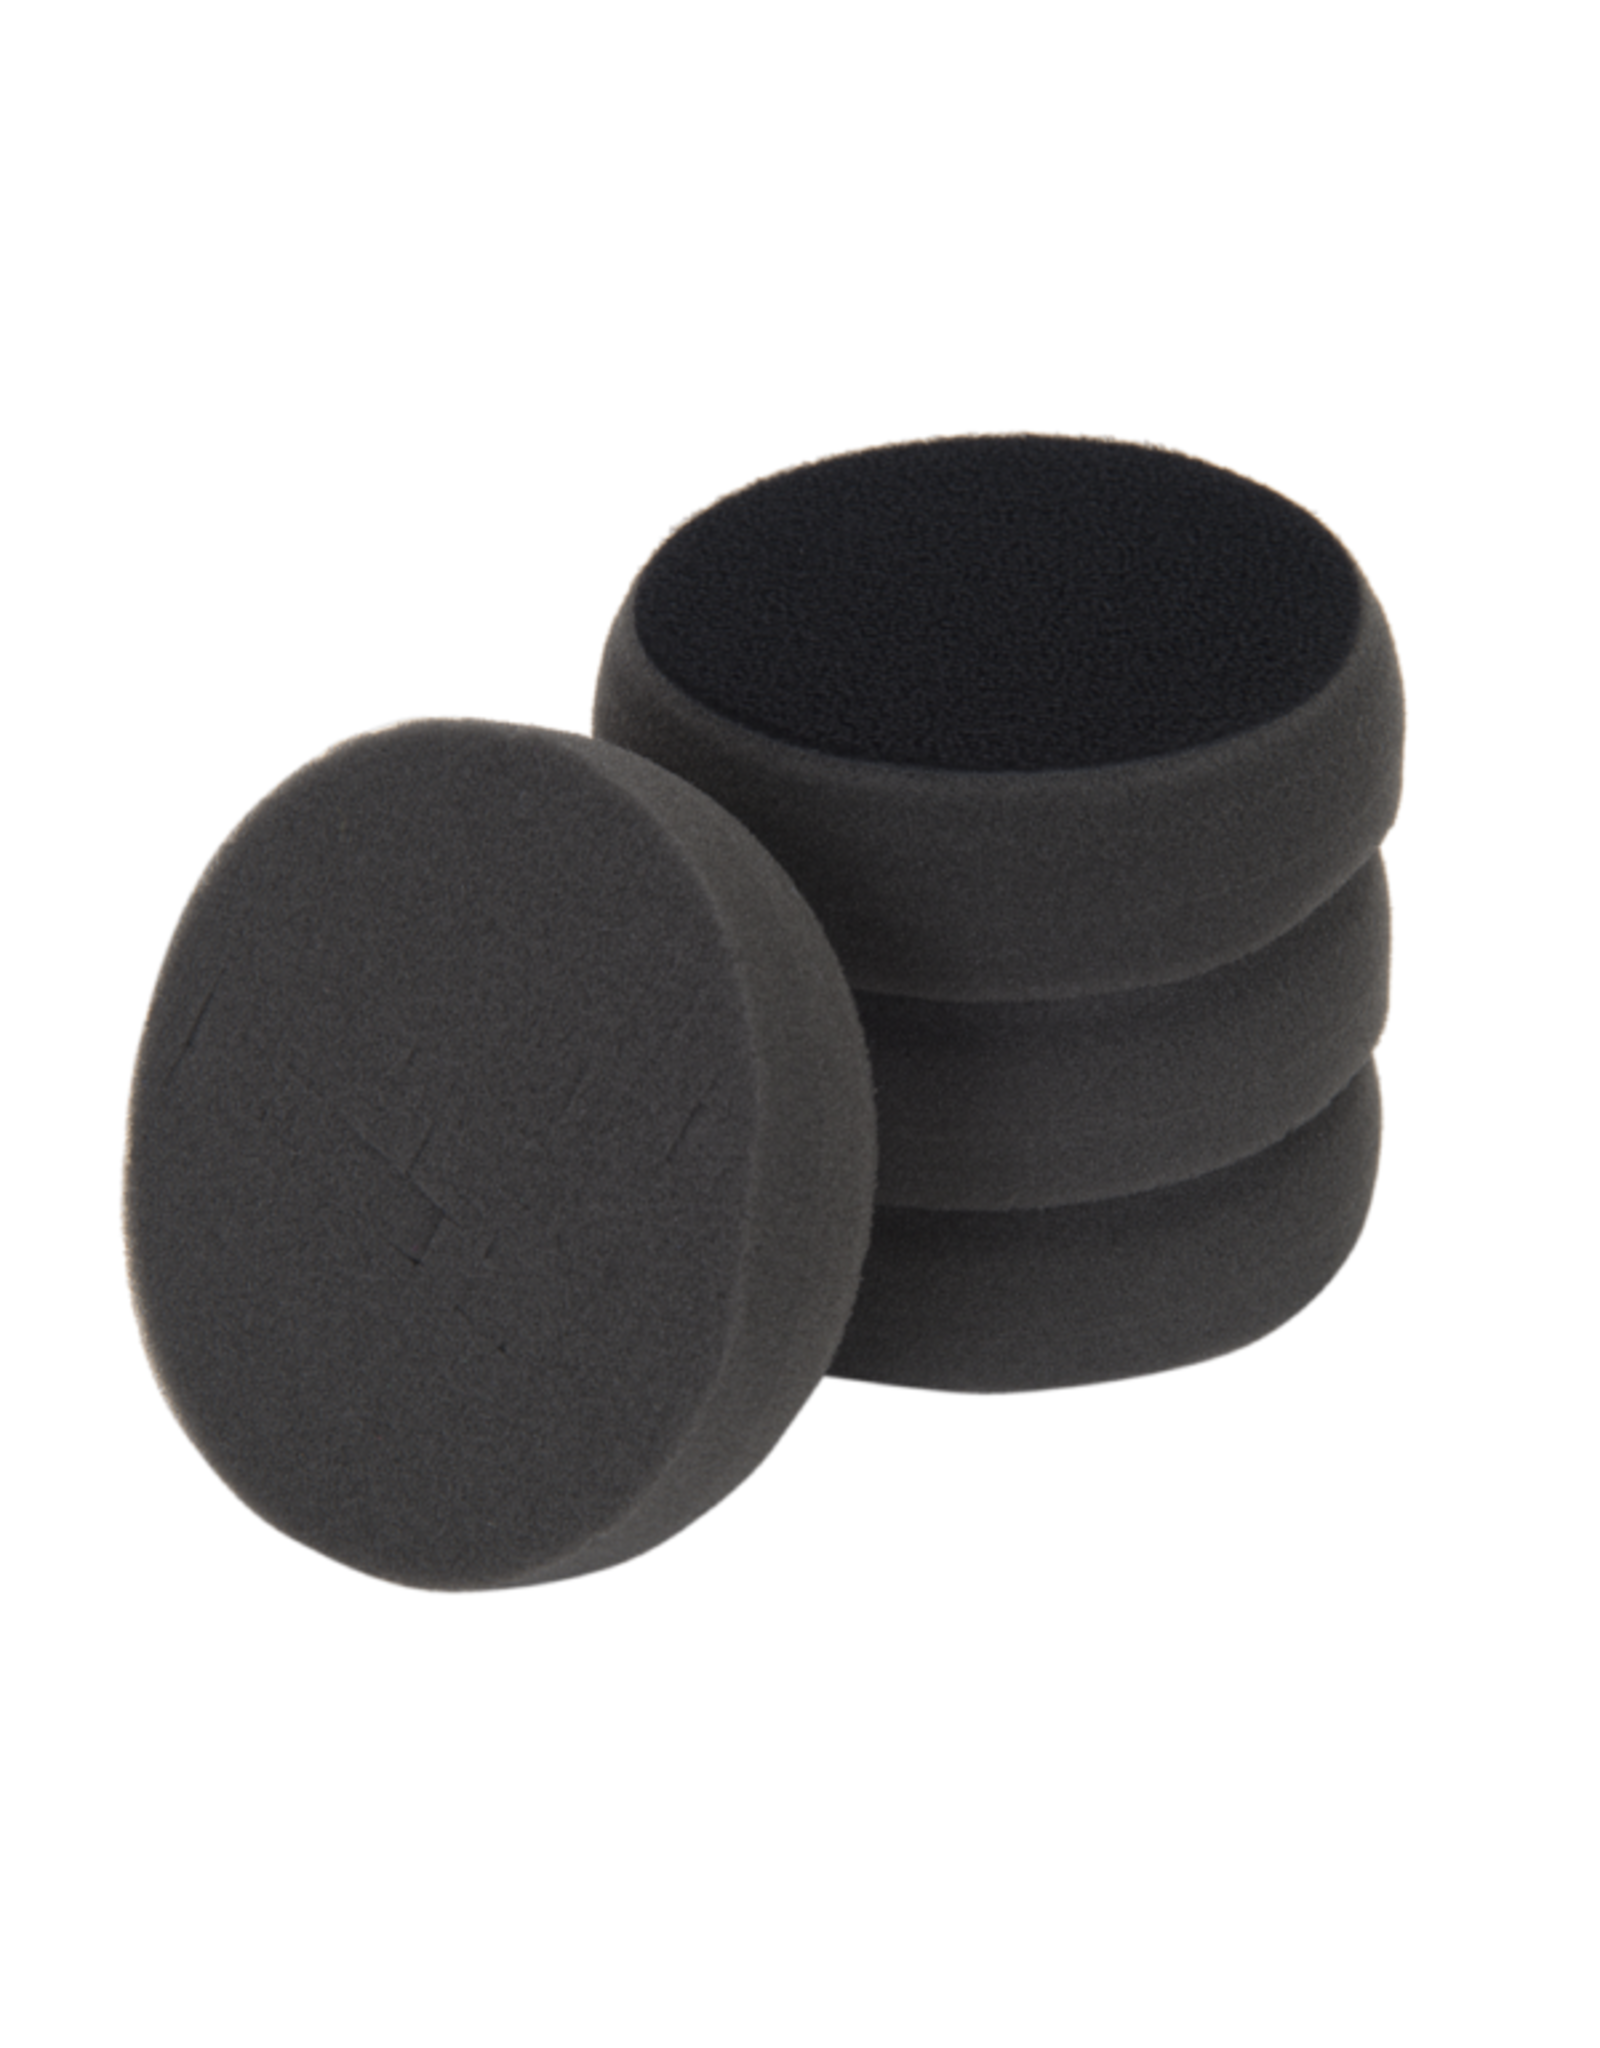 "3D PRODUCTS 3D Black Spider Finishing pad 3.5"" / 90 mm - 2 Pack Foam Pad"